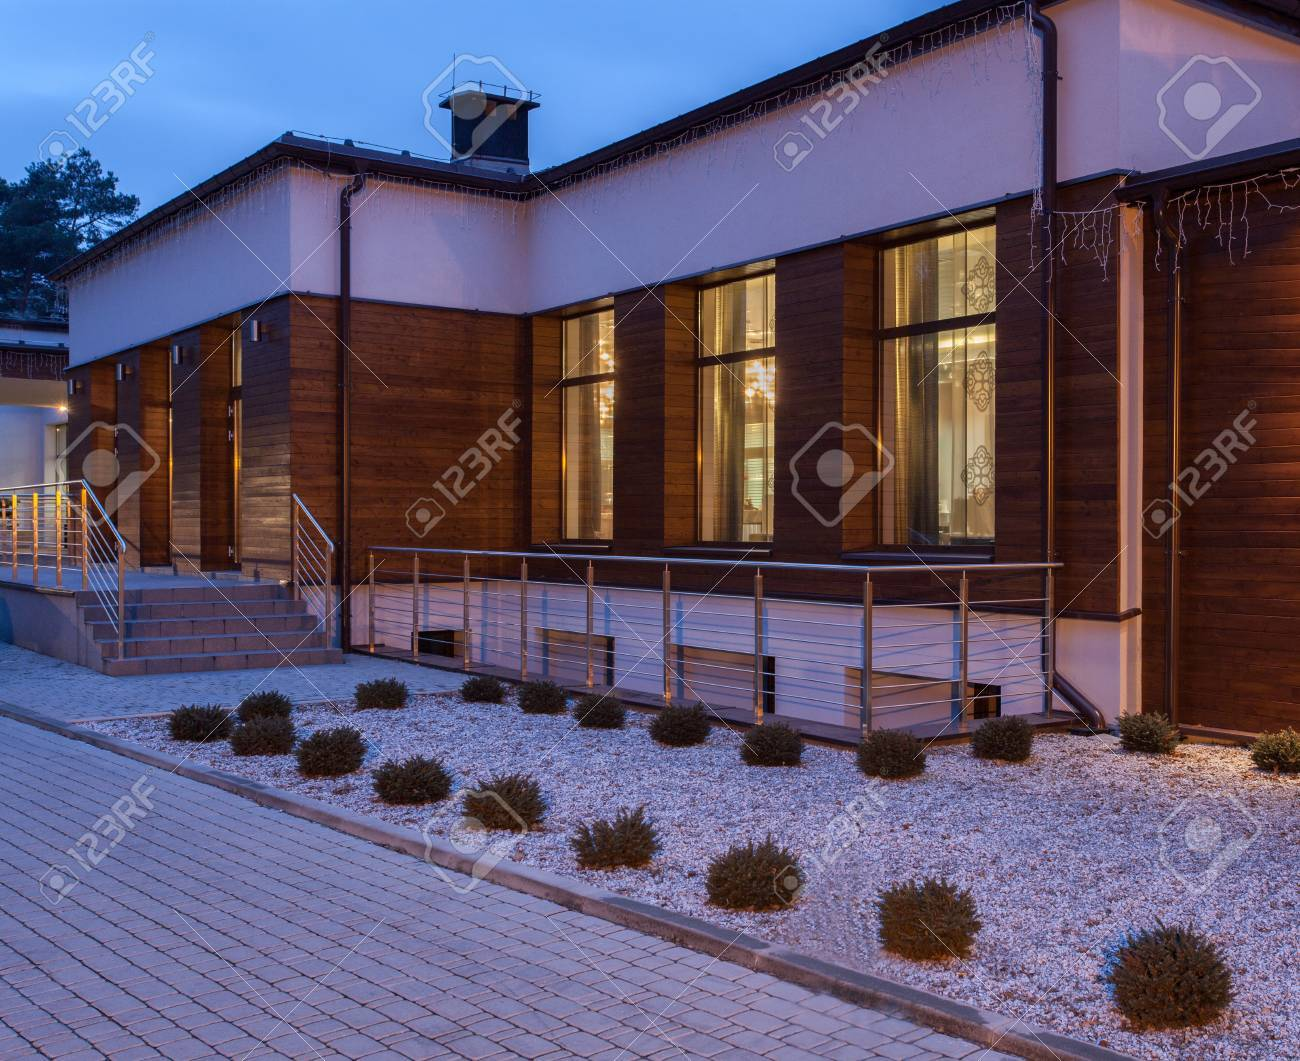 Woodland hotel - Modern and designed building Stock Photo - 18253398